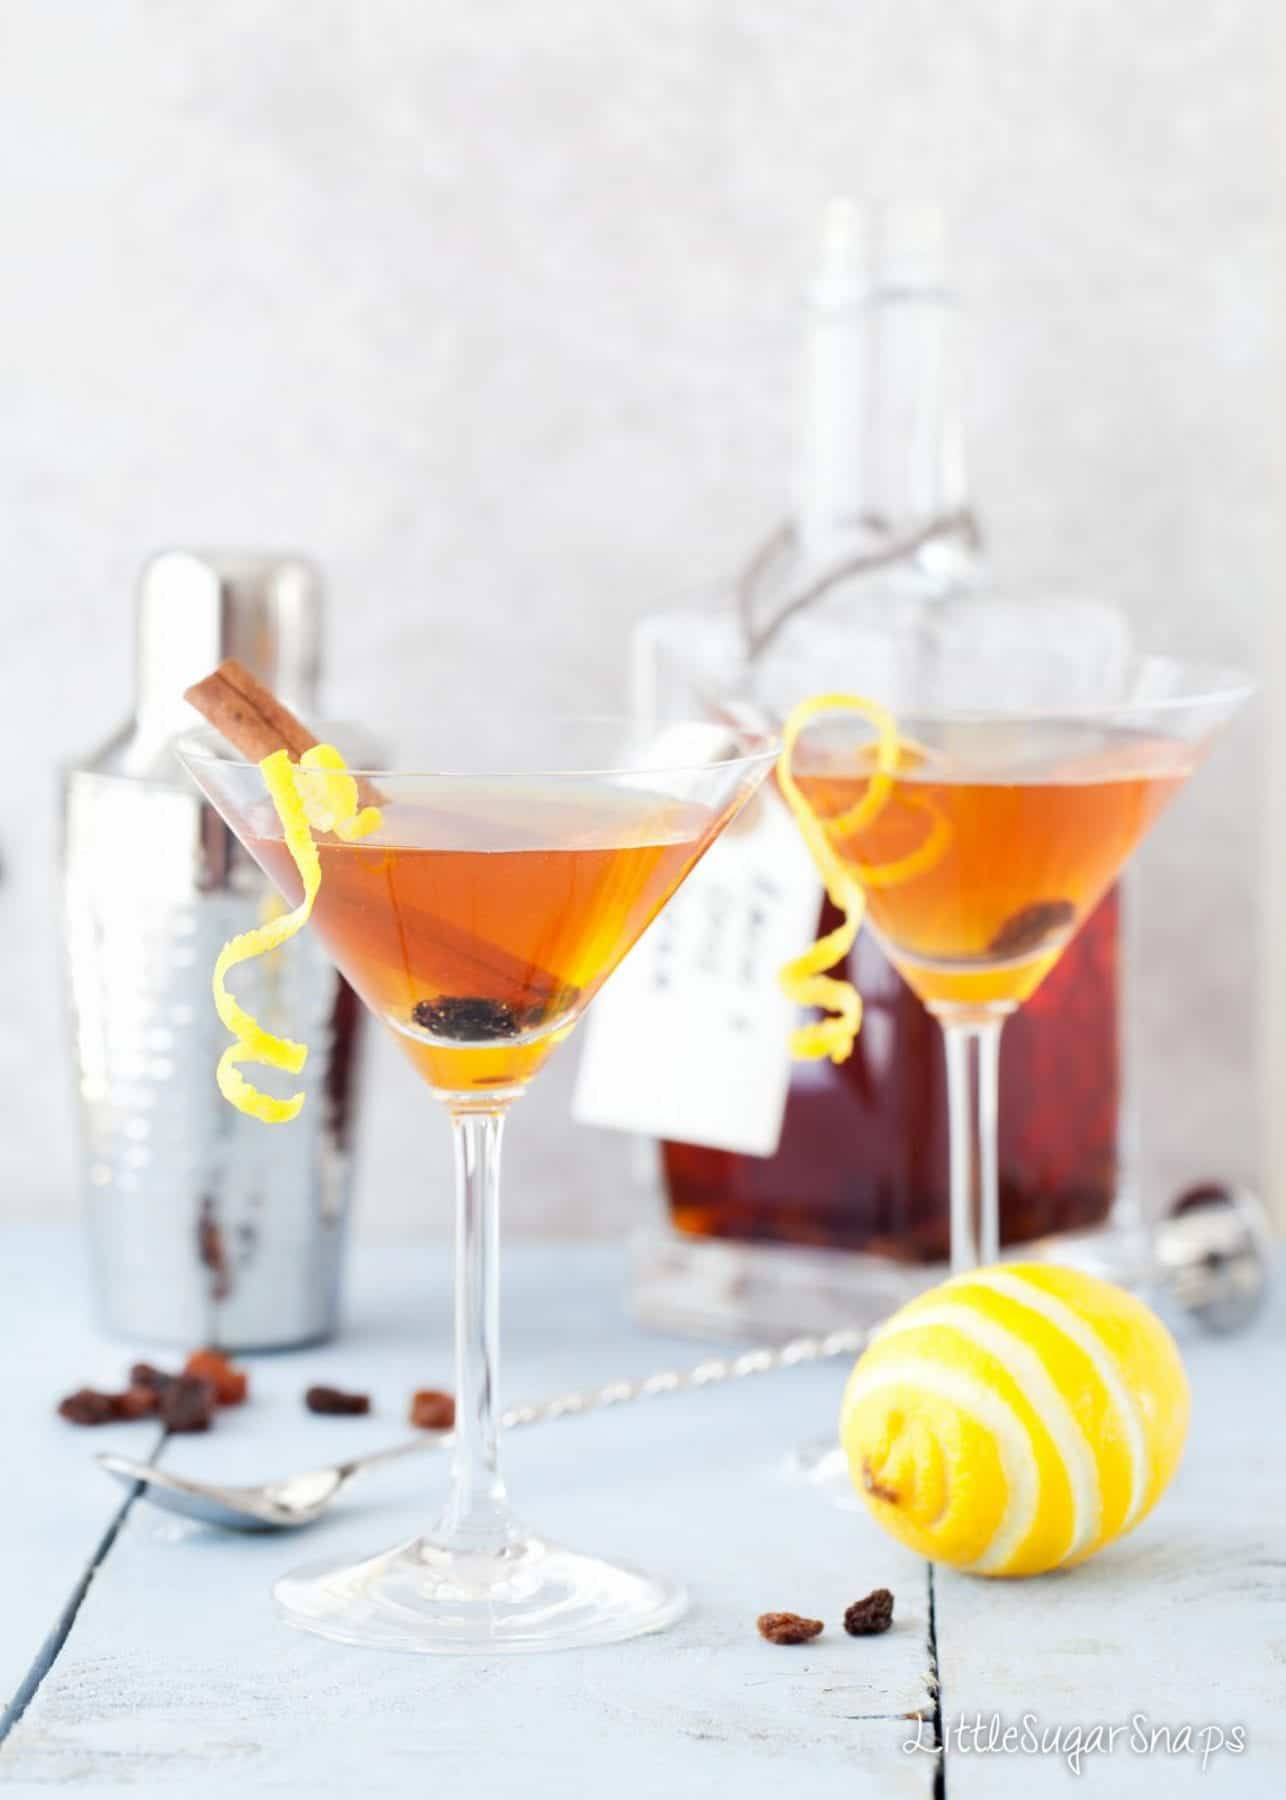 Hot cross bun flavoured Easter martini garnished with lemon, cinnamon and raisins.